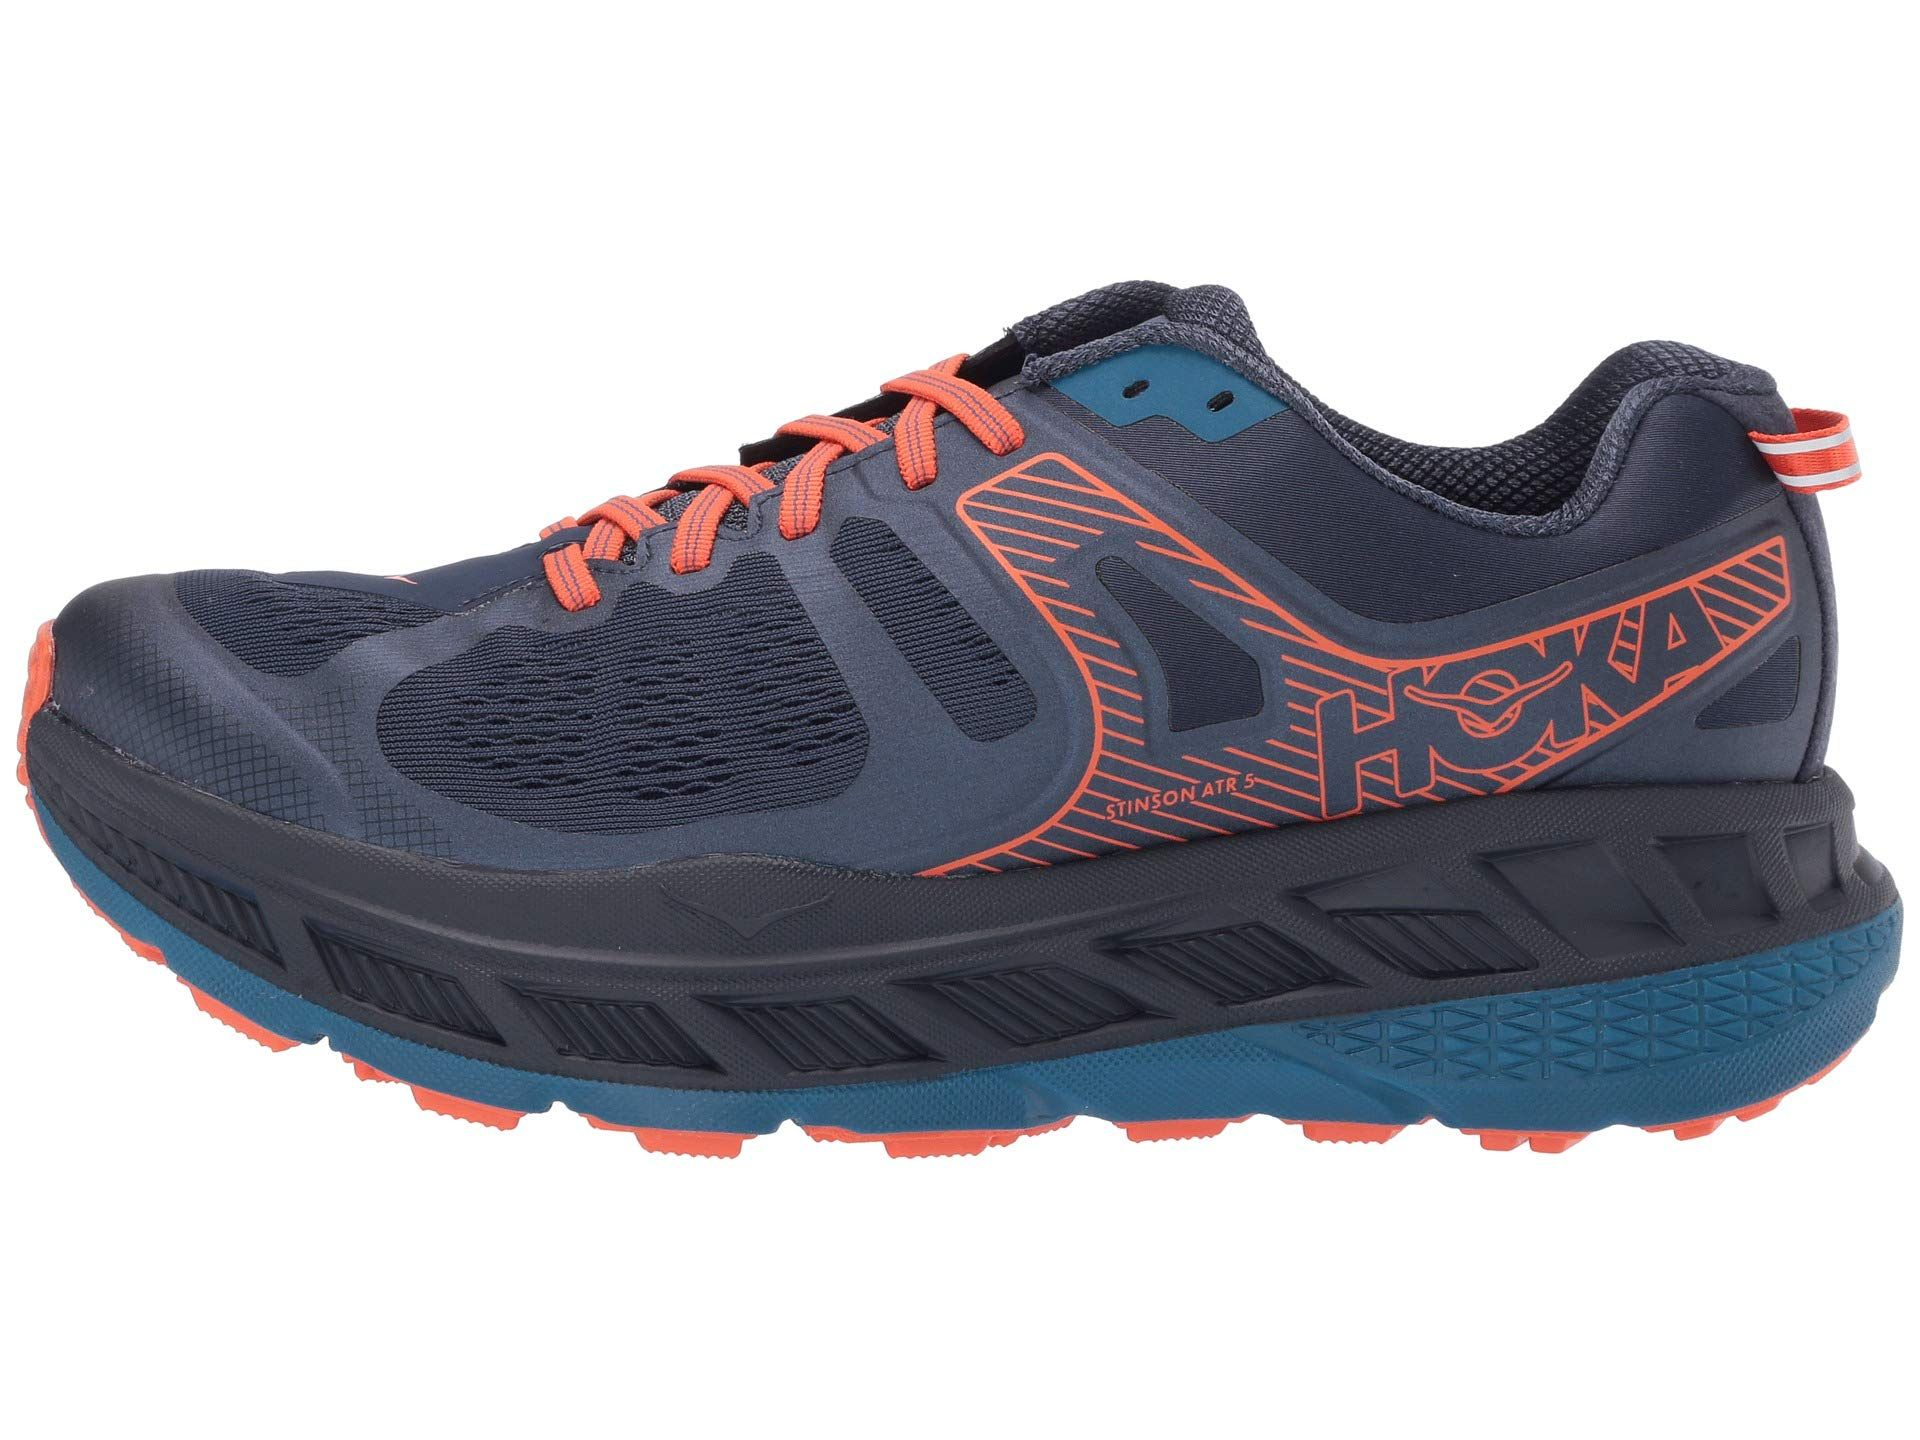 Hoka Running Shoes 2019 | 11 Best Hoka One One Shoes